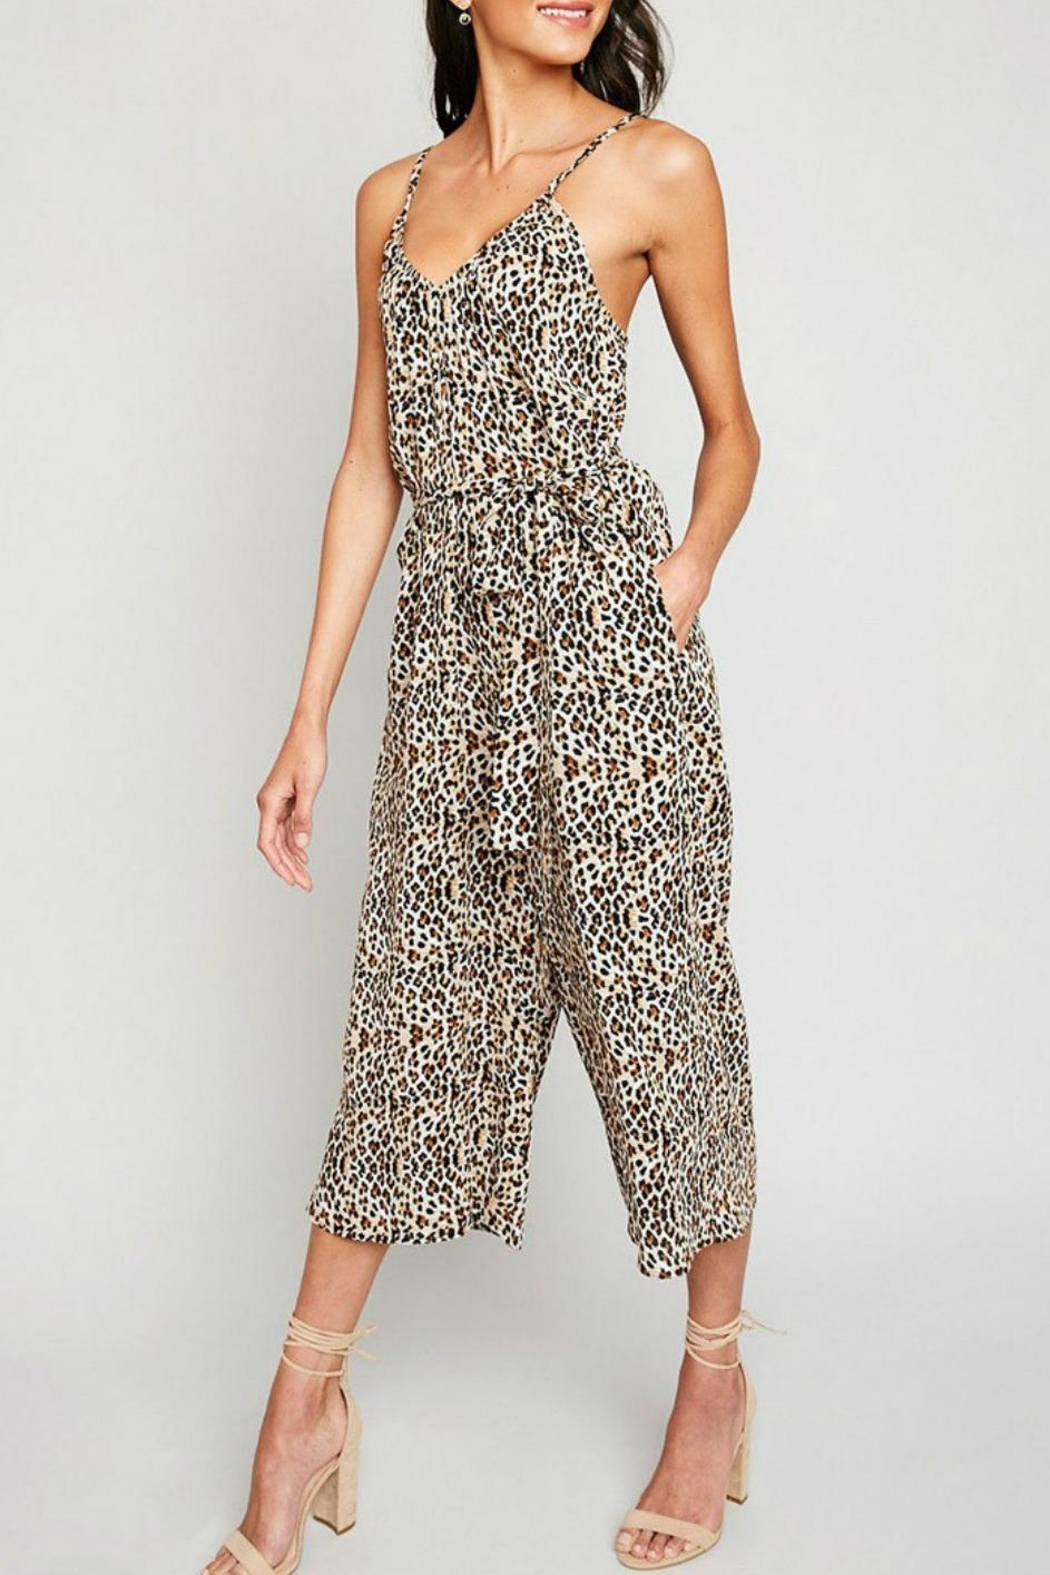 Hayden Los Angeles Leopard Palazzo Jumpsuit - Front Cropped Image